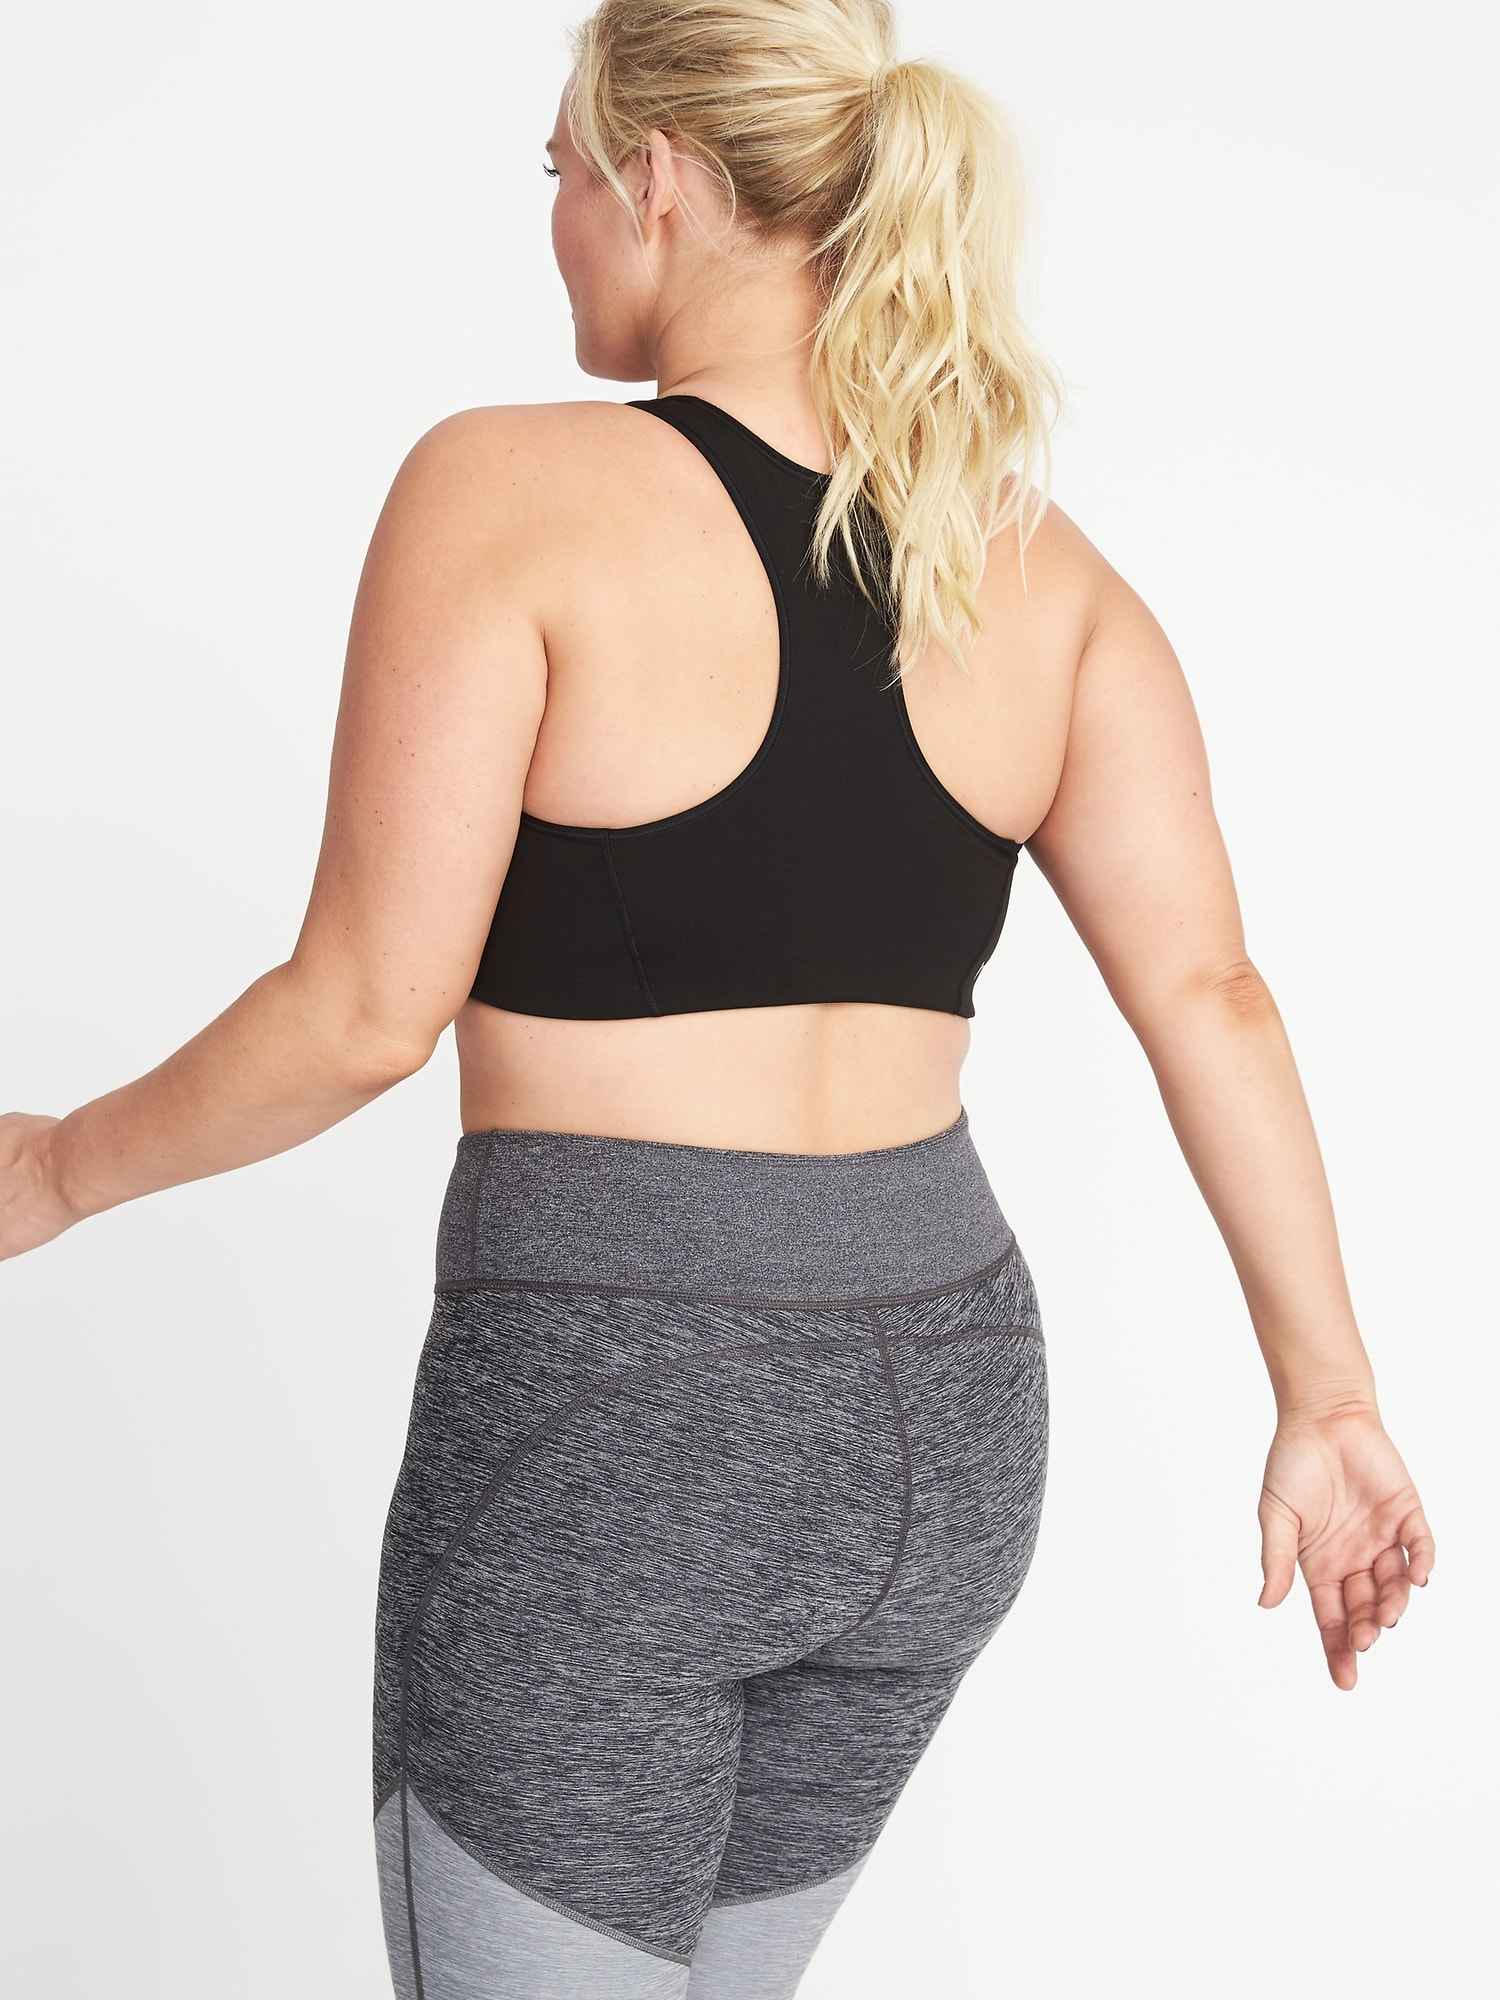 00da041992b074 Home Shop Medium Support Plus-Size Racerback Sports Bra by Old Navy.  Categories: All Products, Basics, Sports Bras.